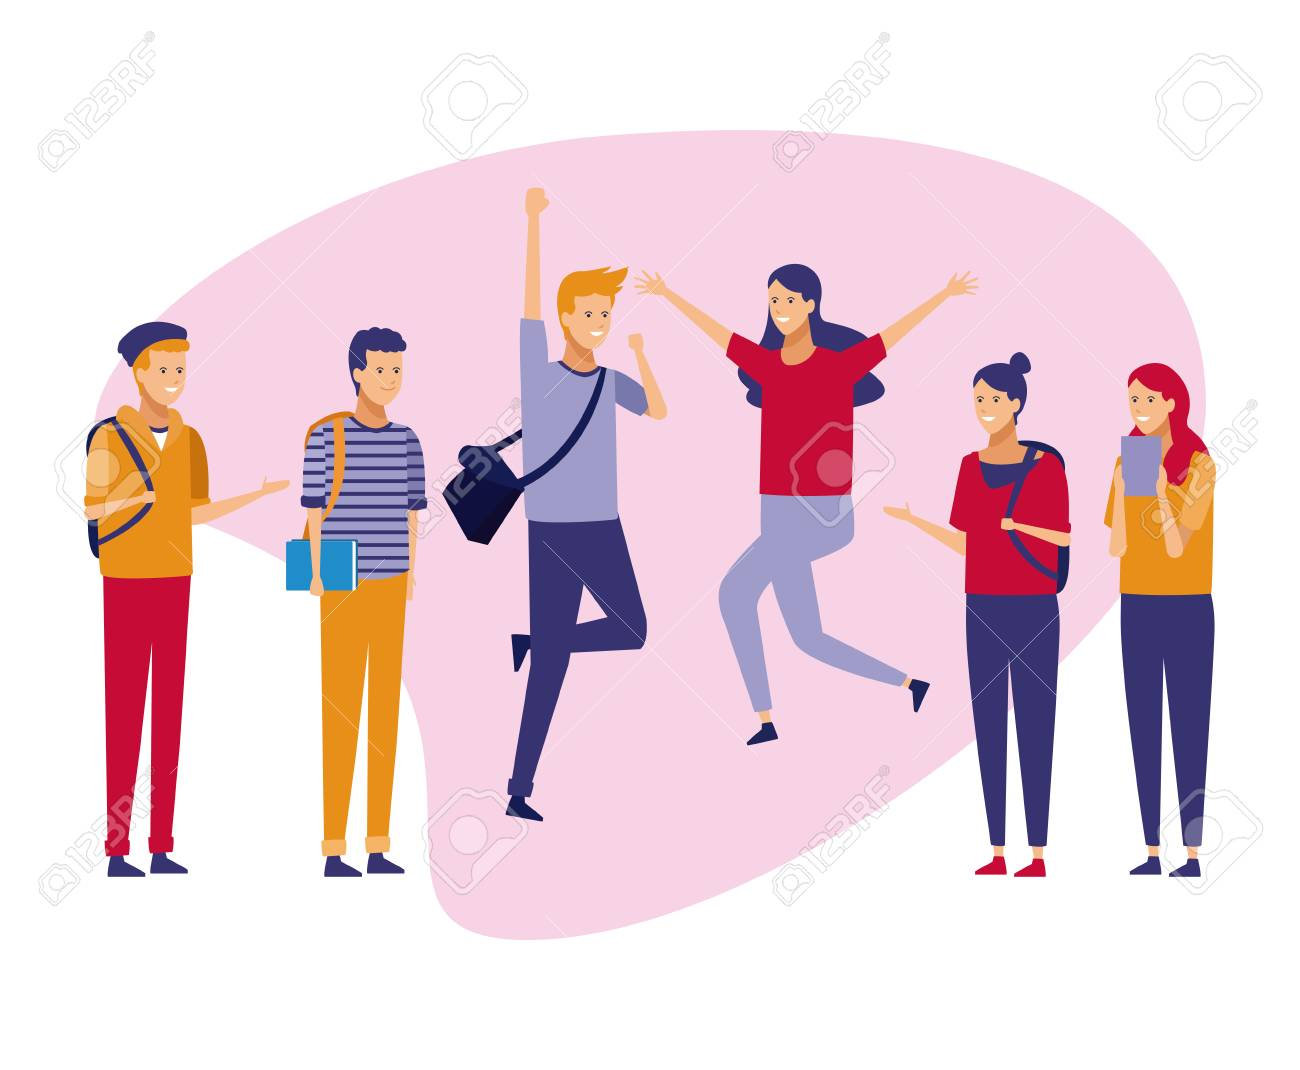 Young teenagers students celebrating with casual clothes cartoons vector illustration graphic design - 110020252